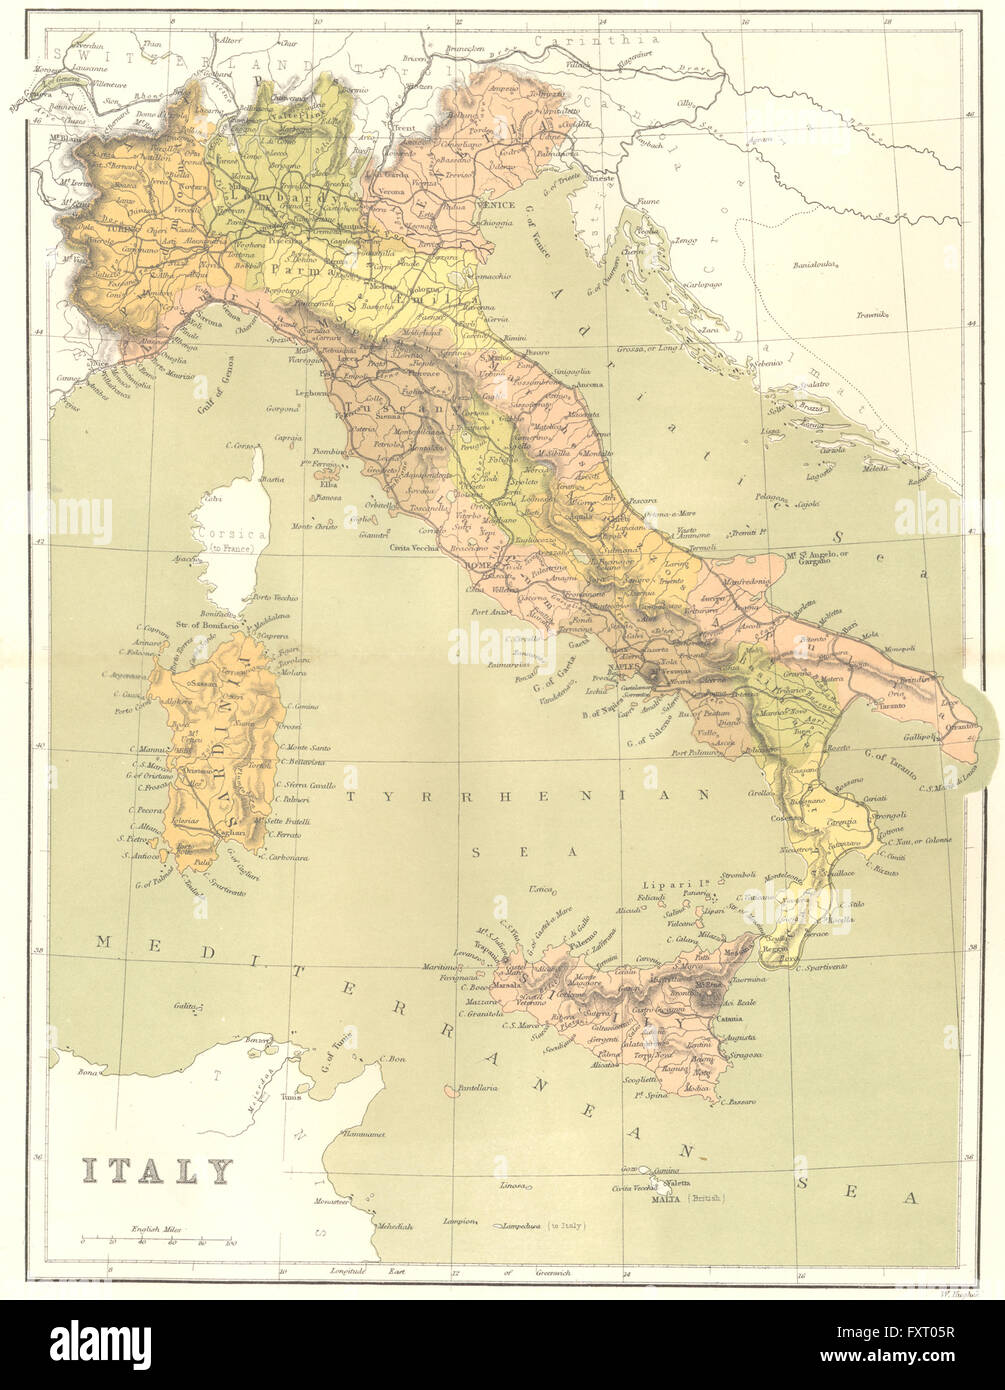 ITALY: Italy, c1885 antique map - Stock Image